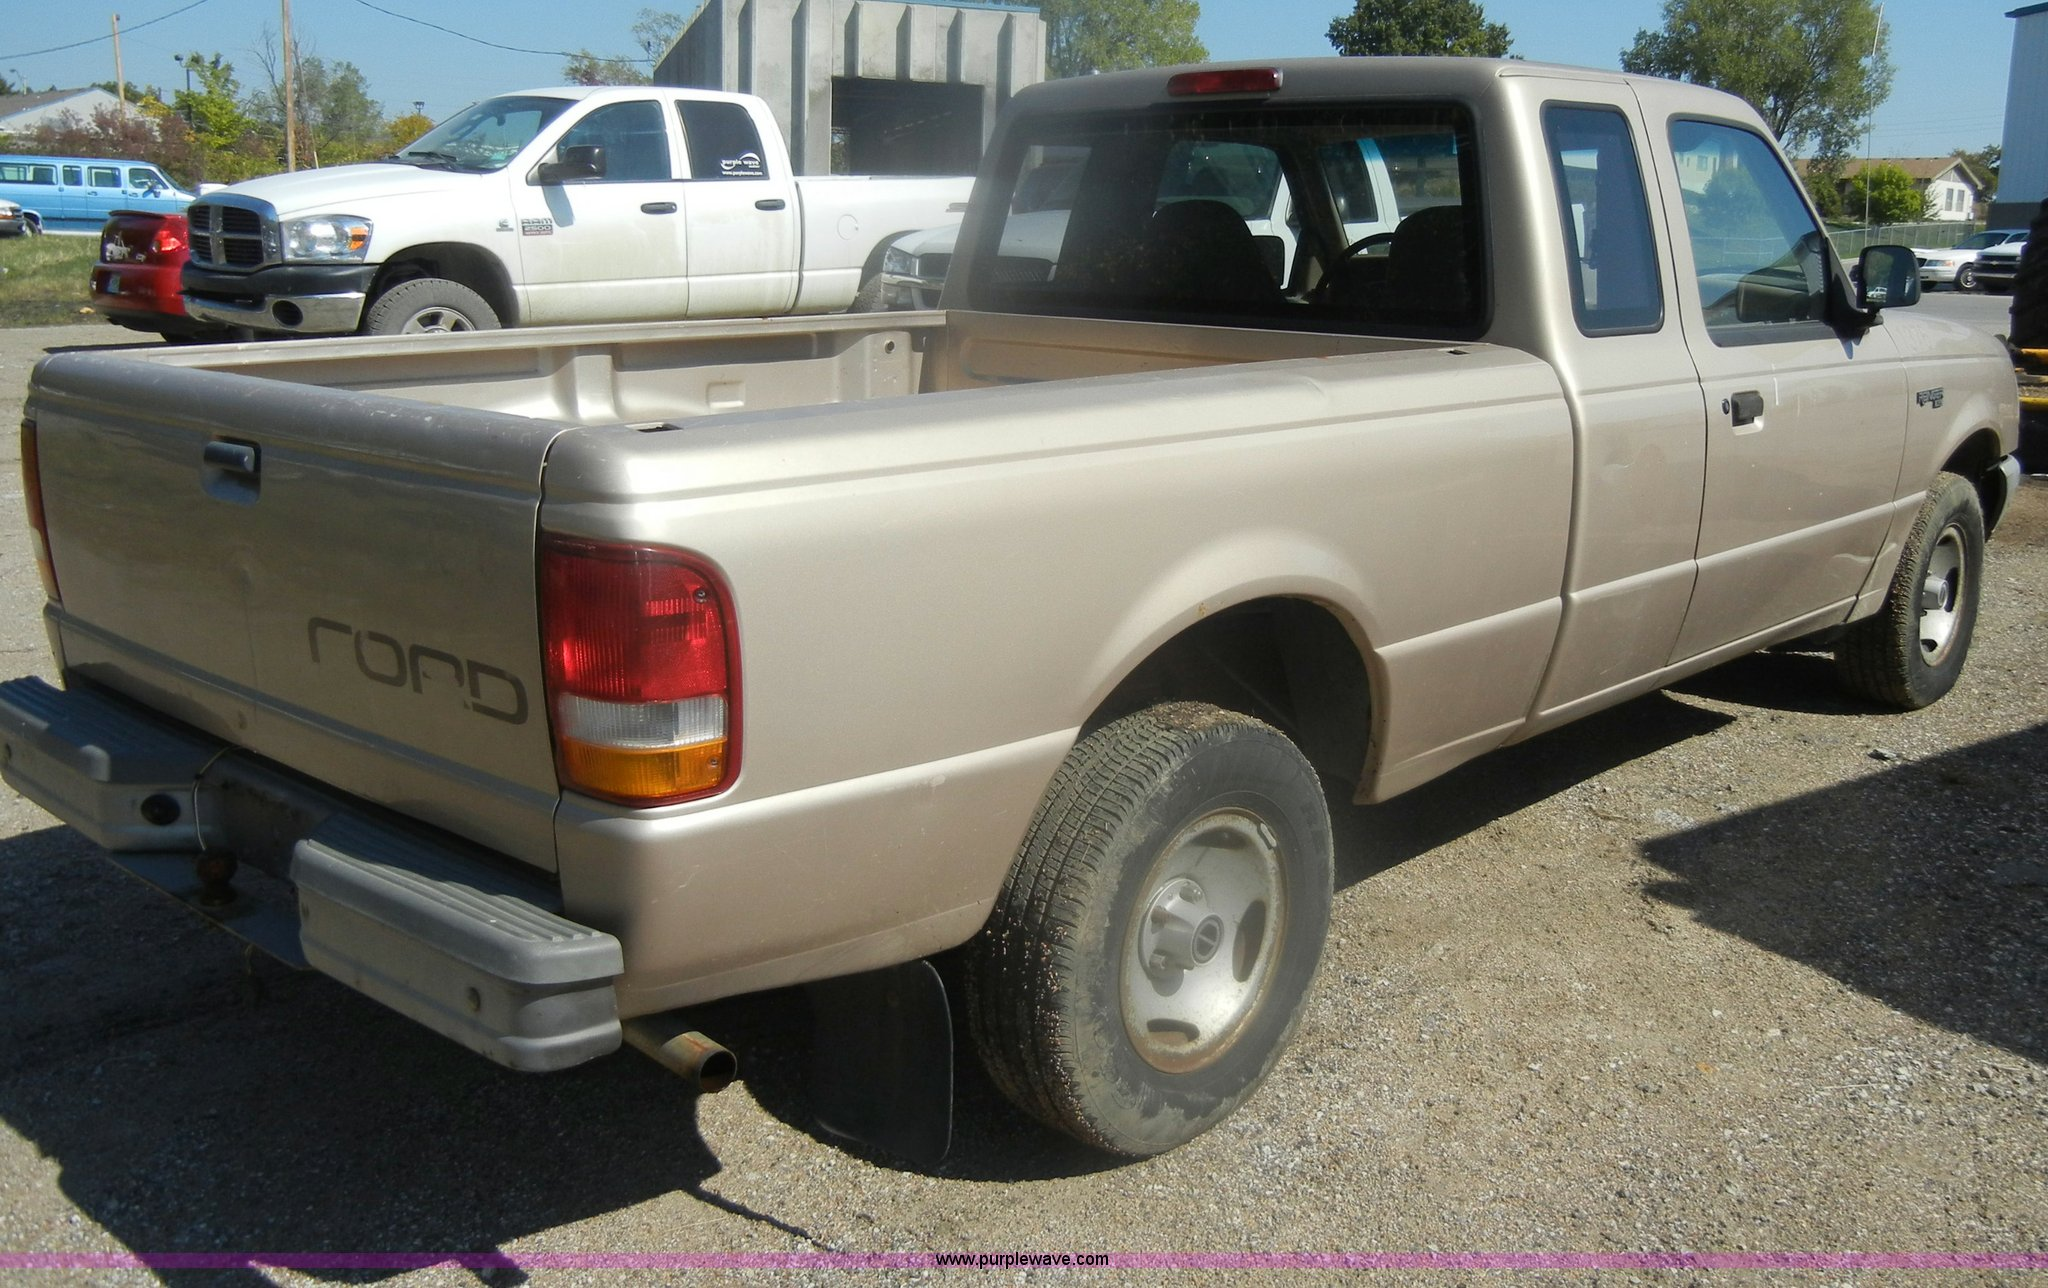 1993 Ford Ranger Xl Supercab Pickup Truck Item D4952 Sol Power Window Motor For Full Size In New